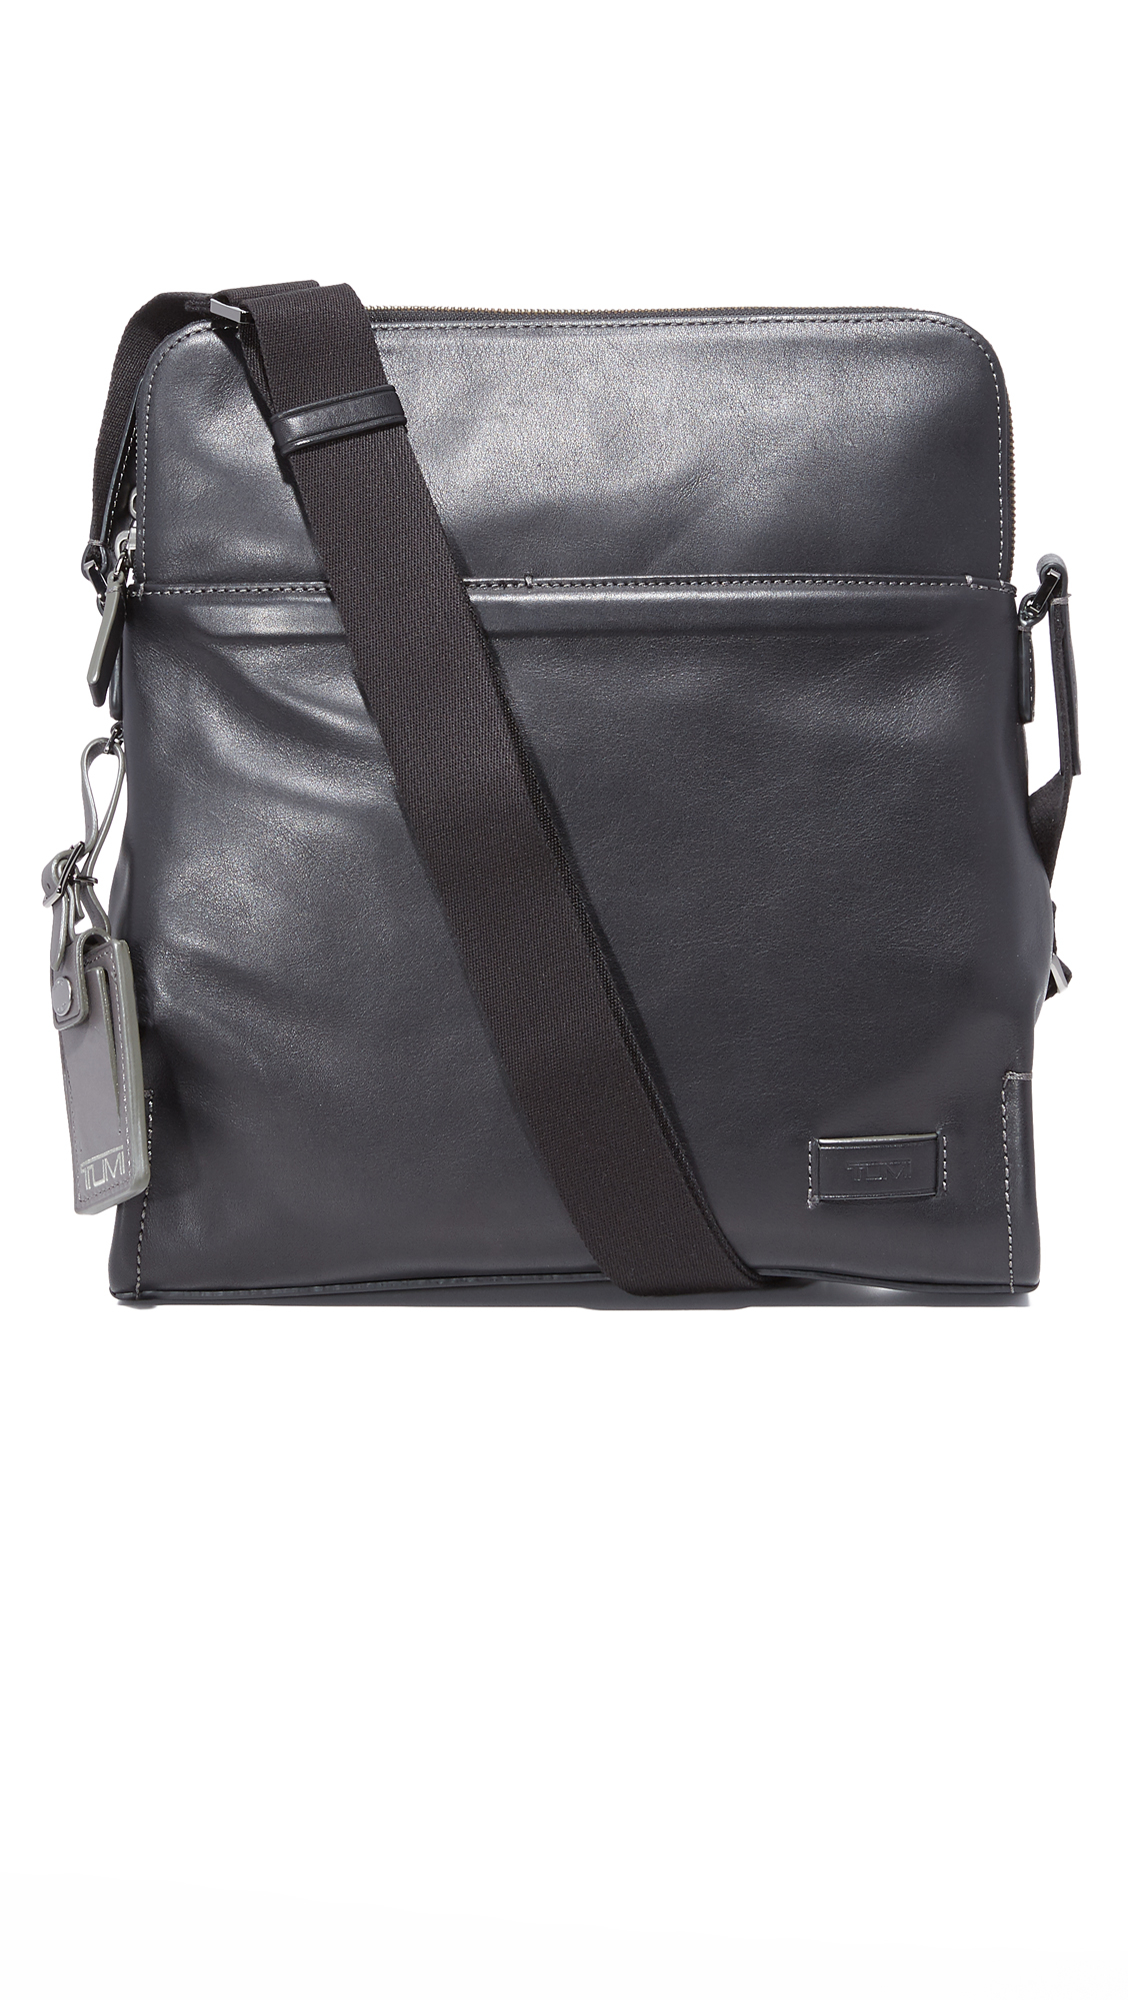 728382d0bad5 Tumi Harrison Leather Stratton Cross Body Bag in Black for .